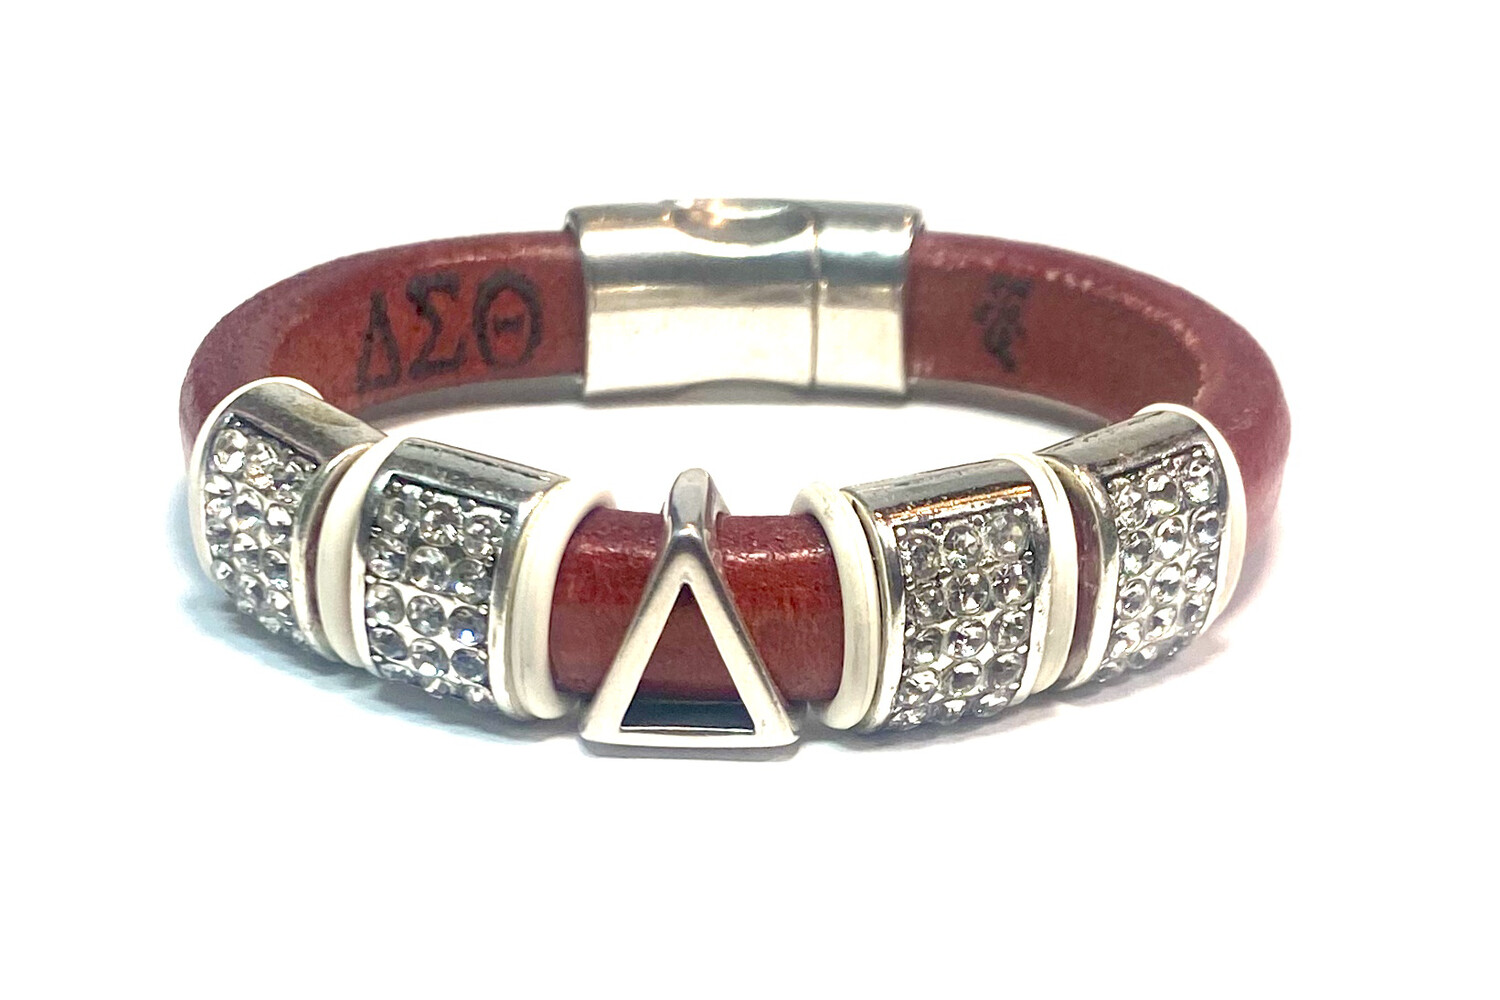 Bracelet | Red Leather Pyramid Symbol With Bling Bling Classy Creations Originals